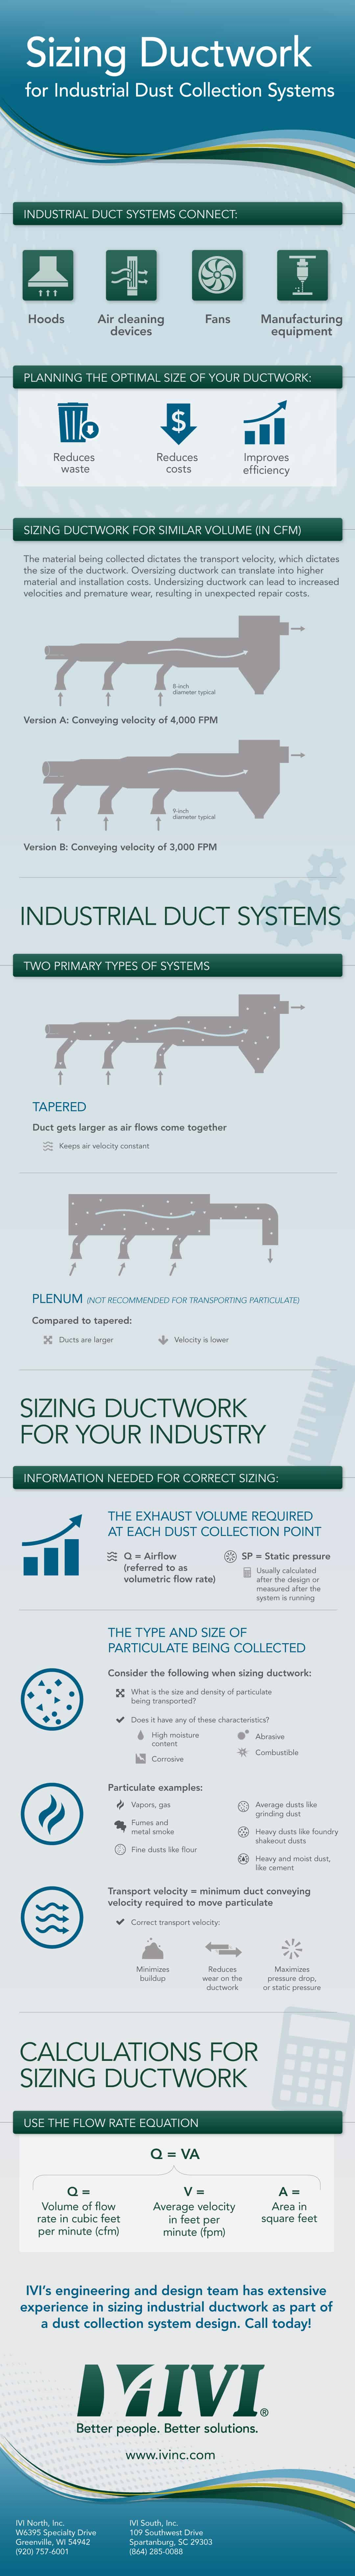 Sizing ductwork infographic